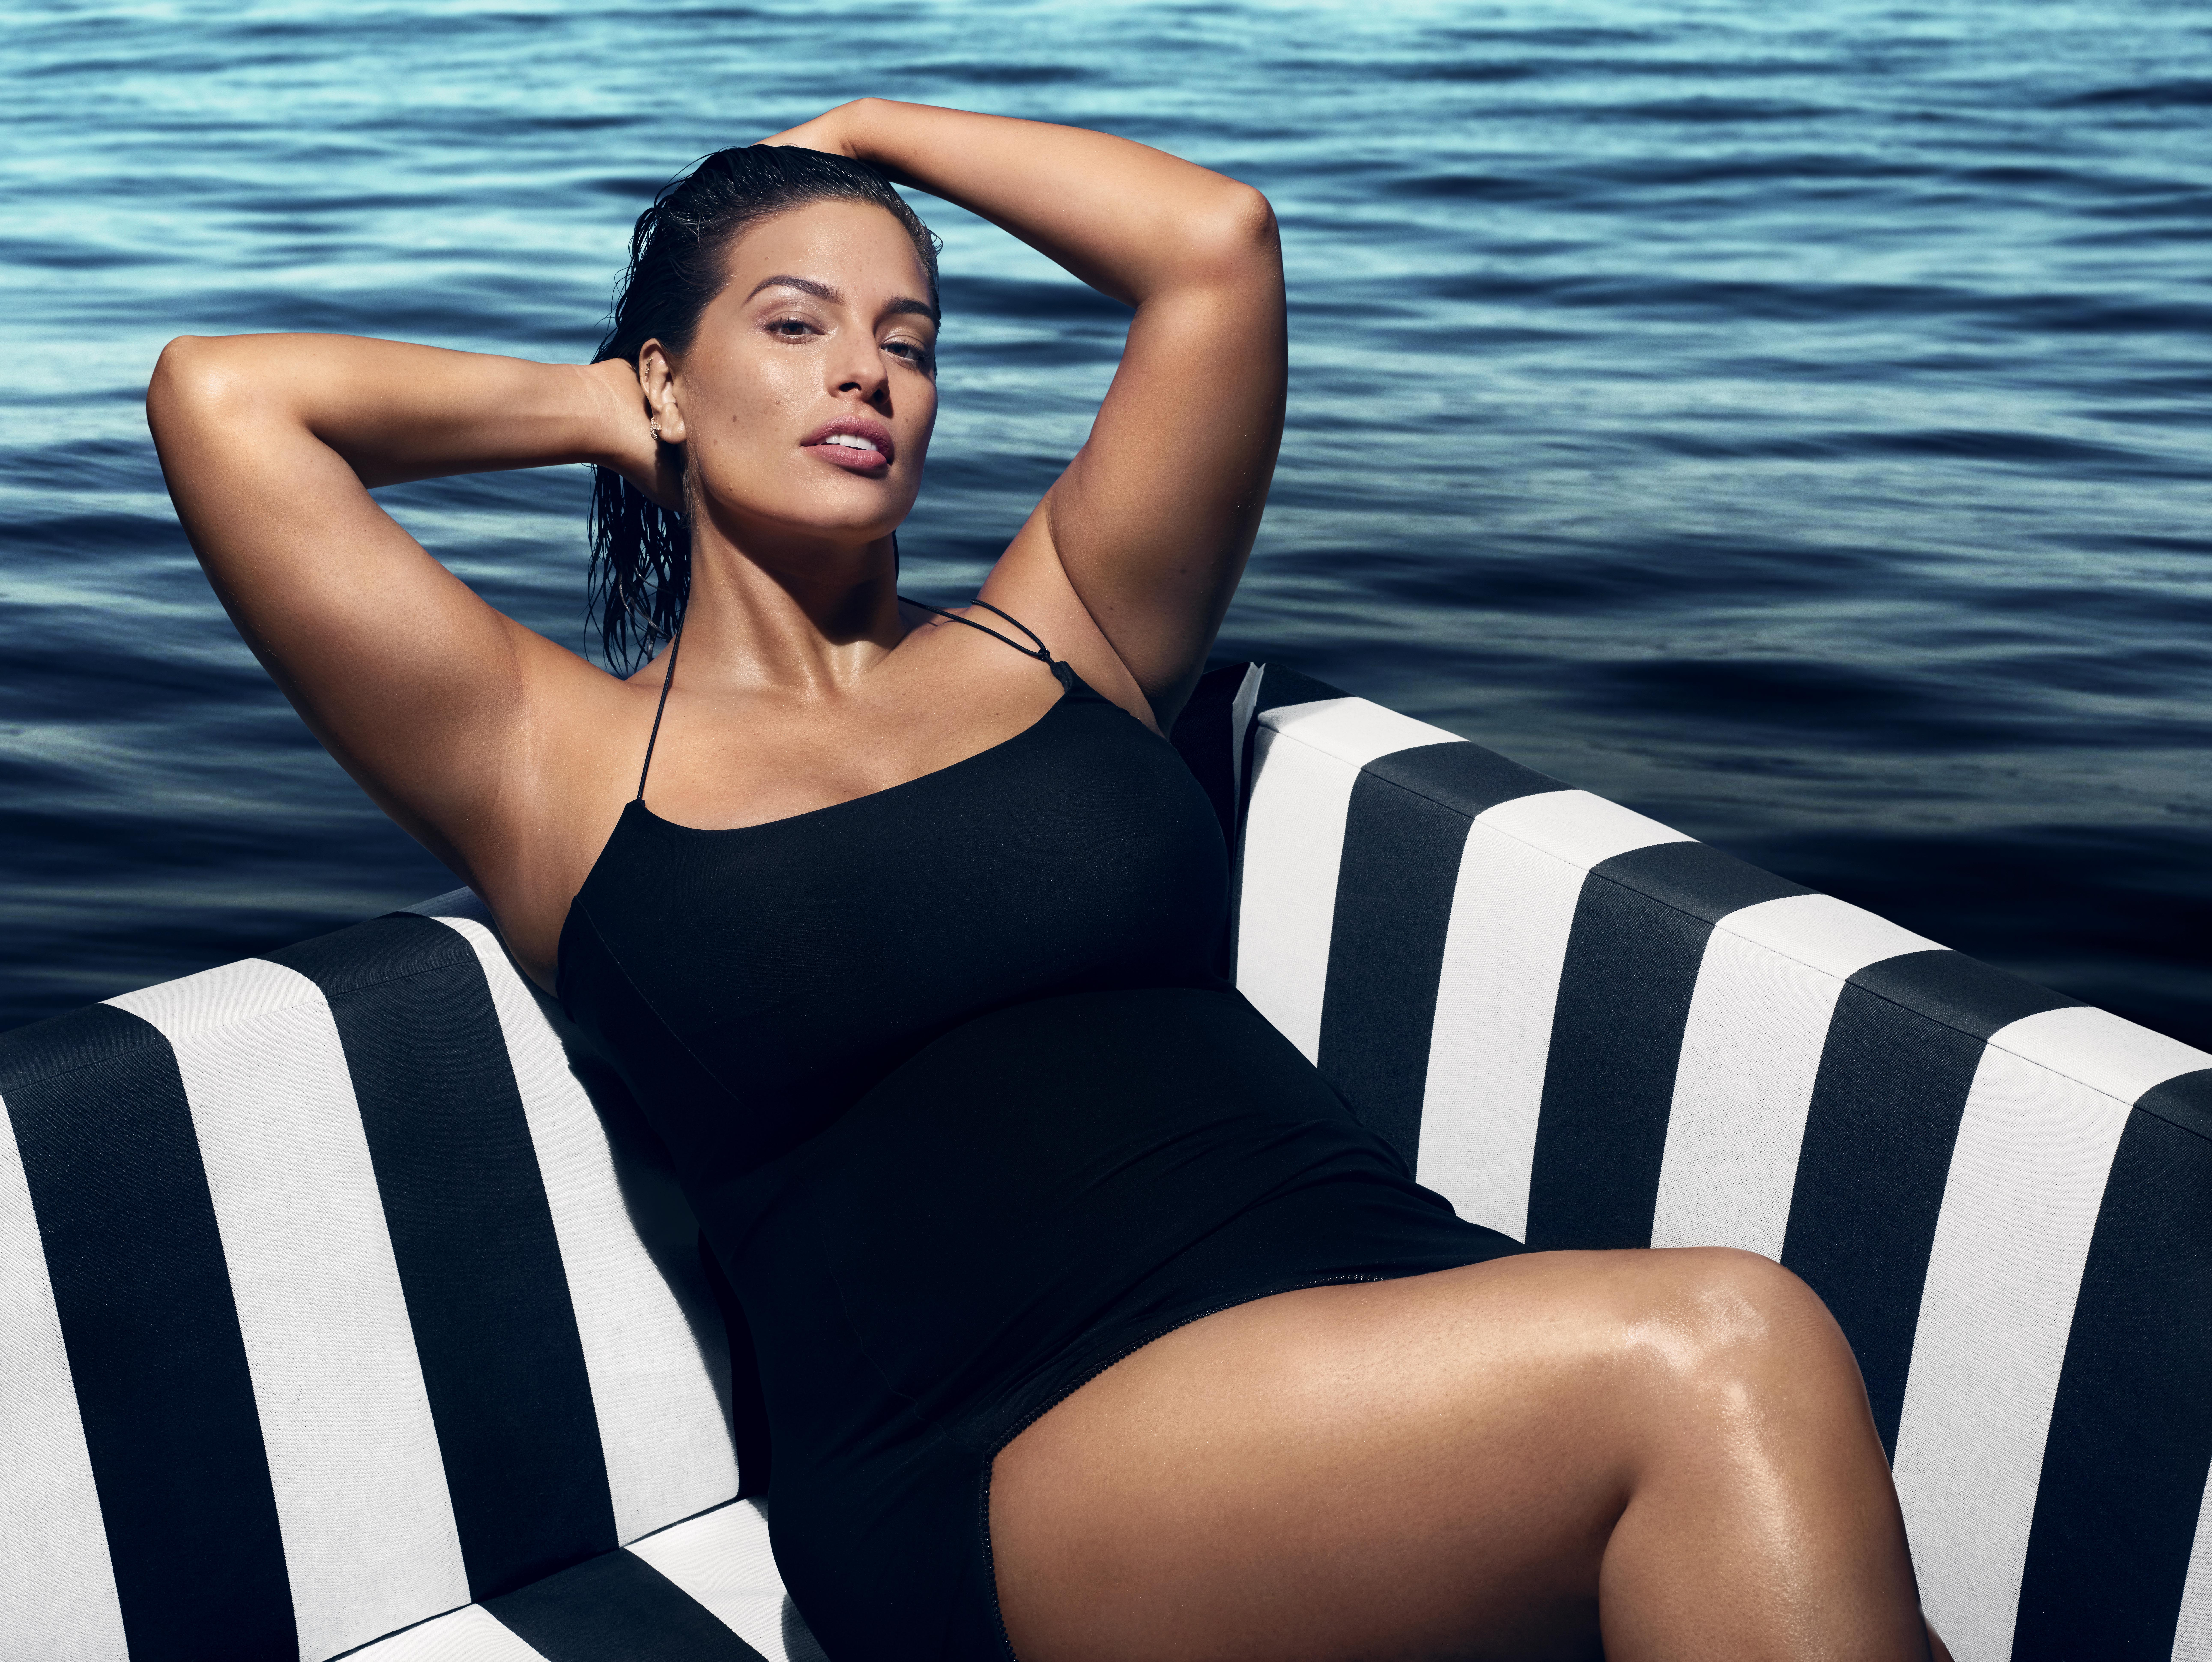 """Ashley Graham is the new face of the St. Tropez """"You Set the Tone"""" brand campaign."""